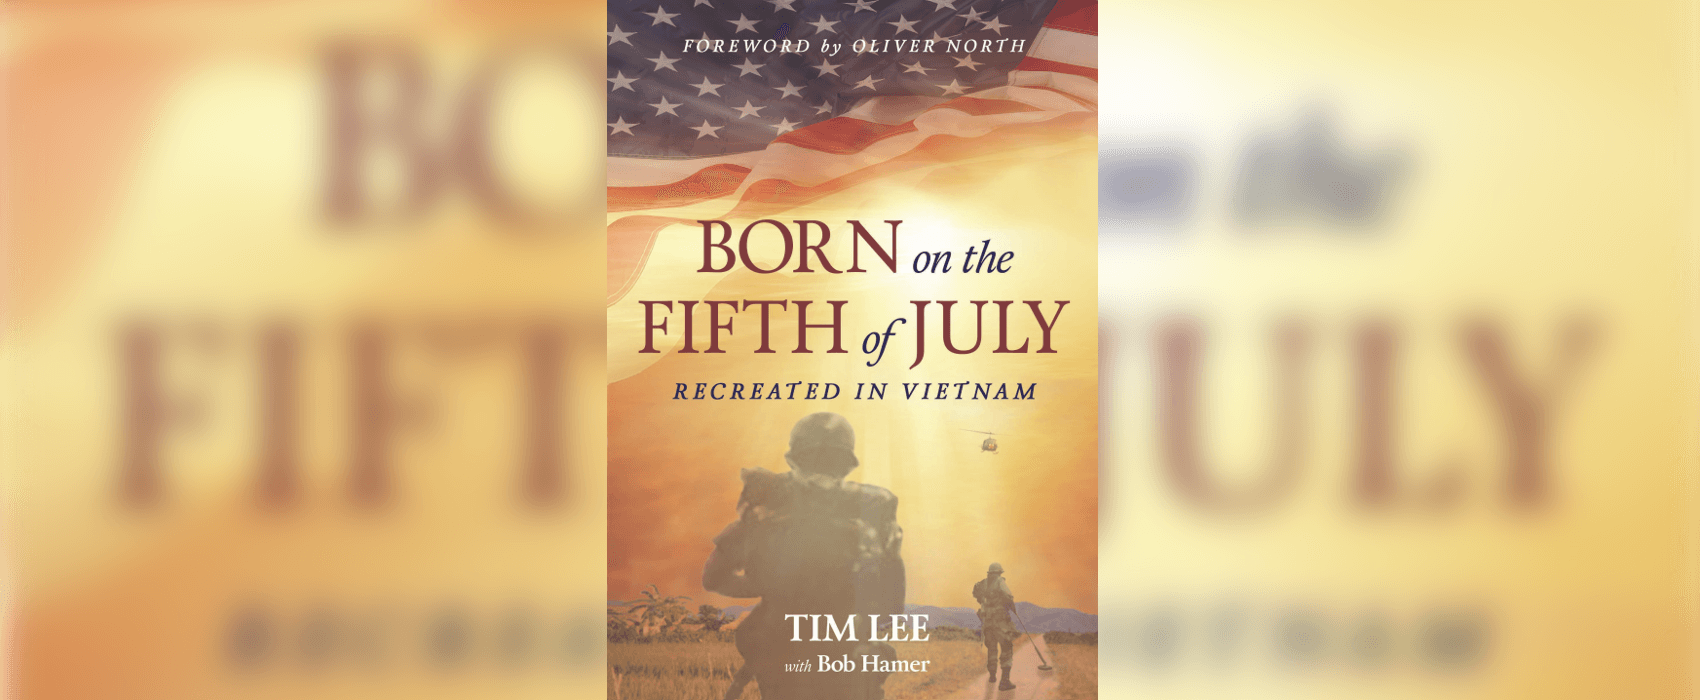 Born on the Fifth of July Tim Lees Autobiography